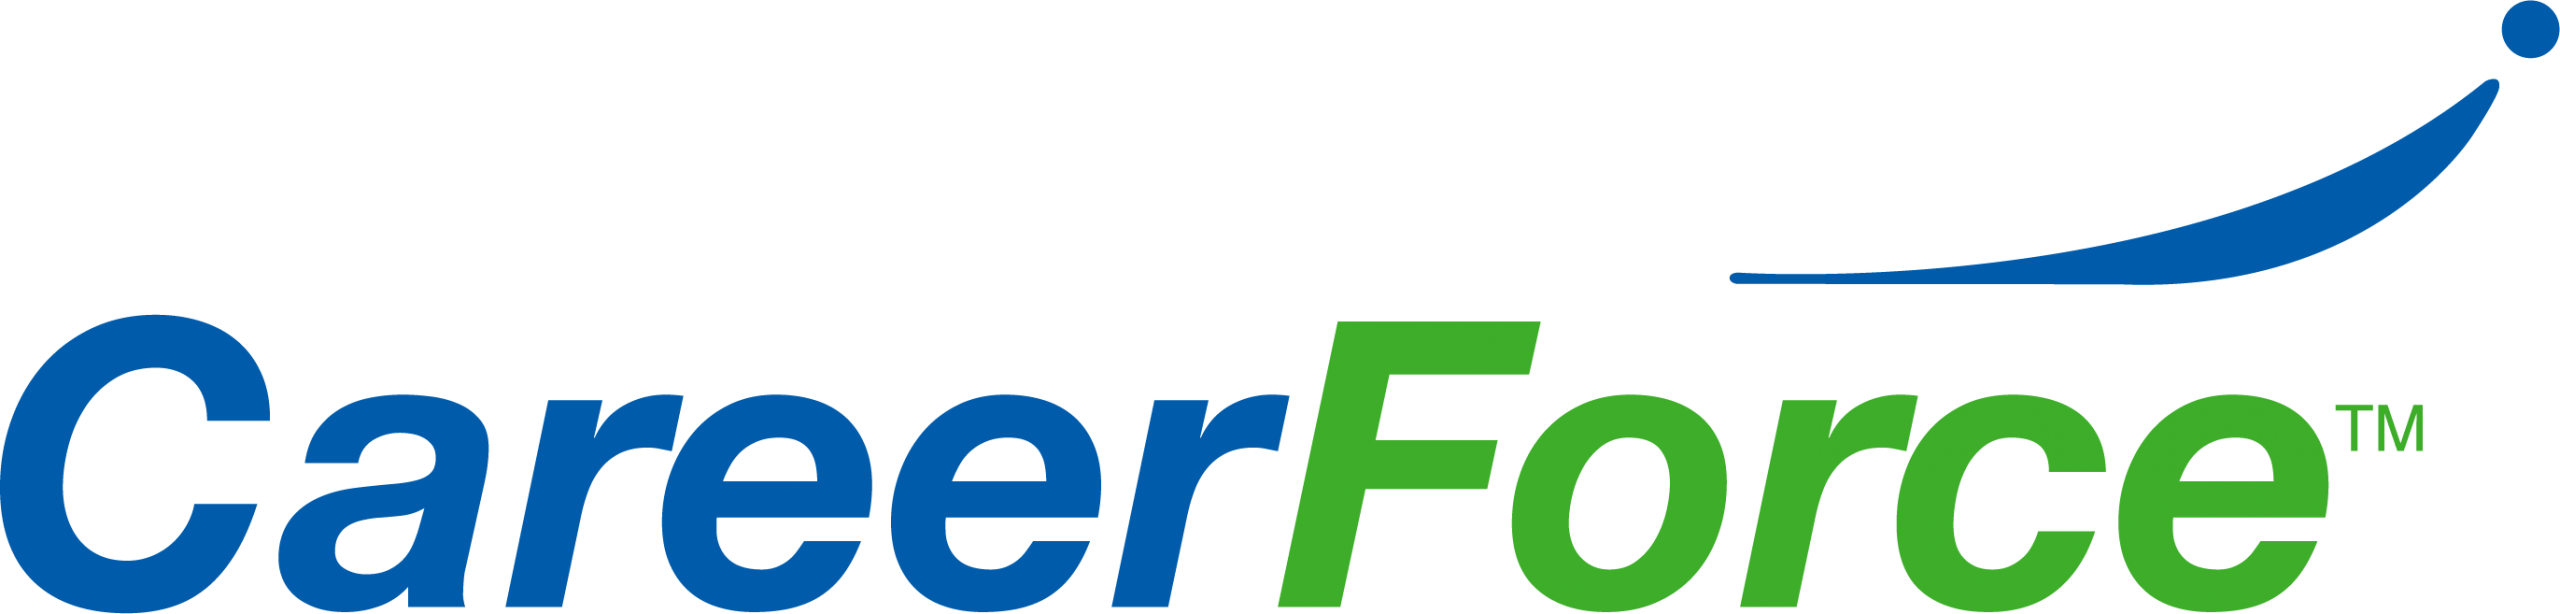 careerforcemn logo